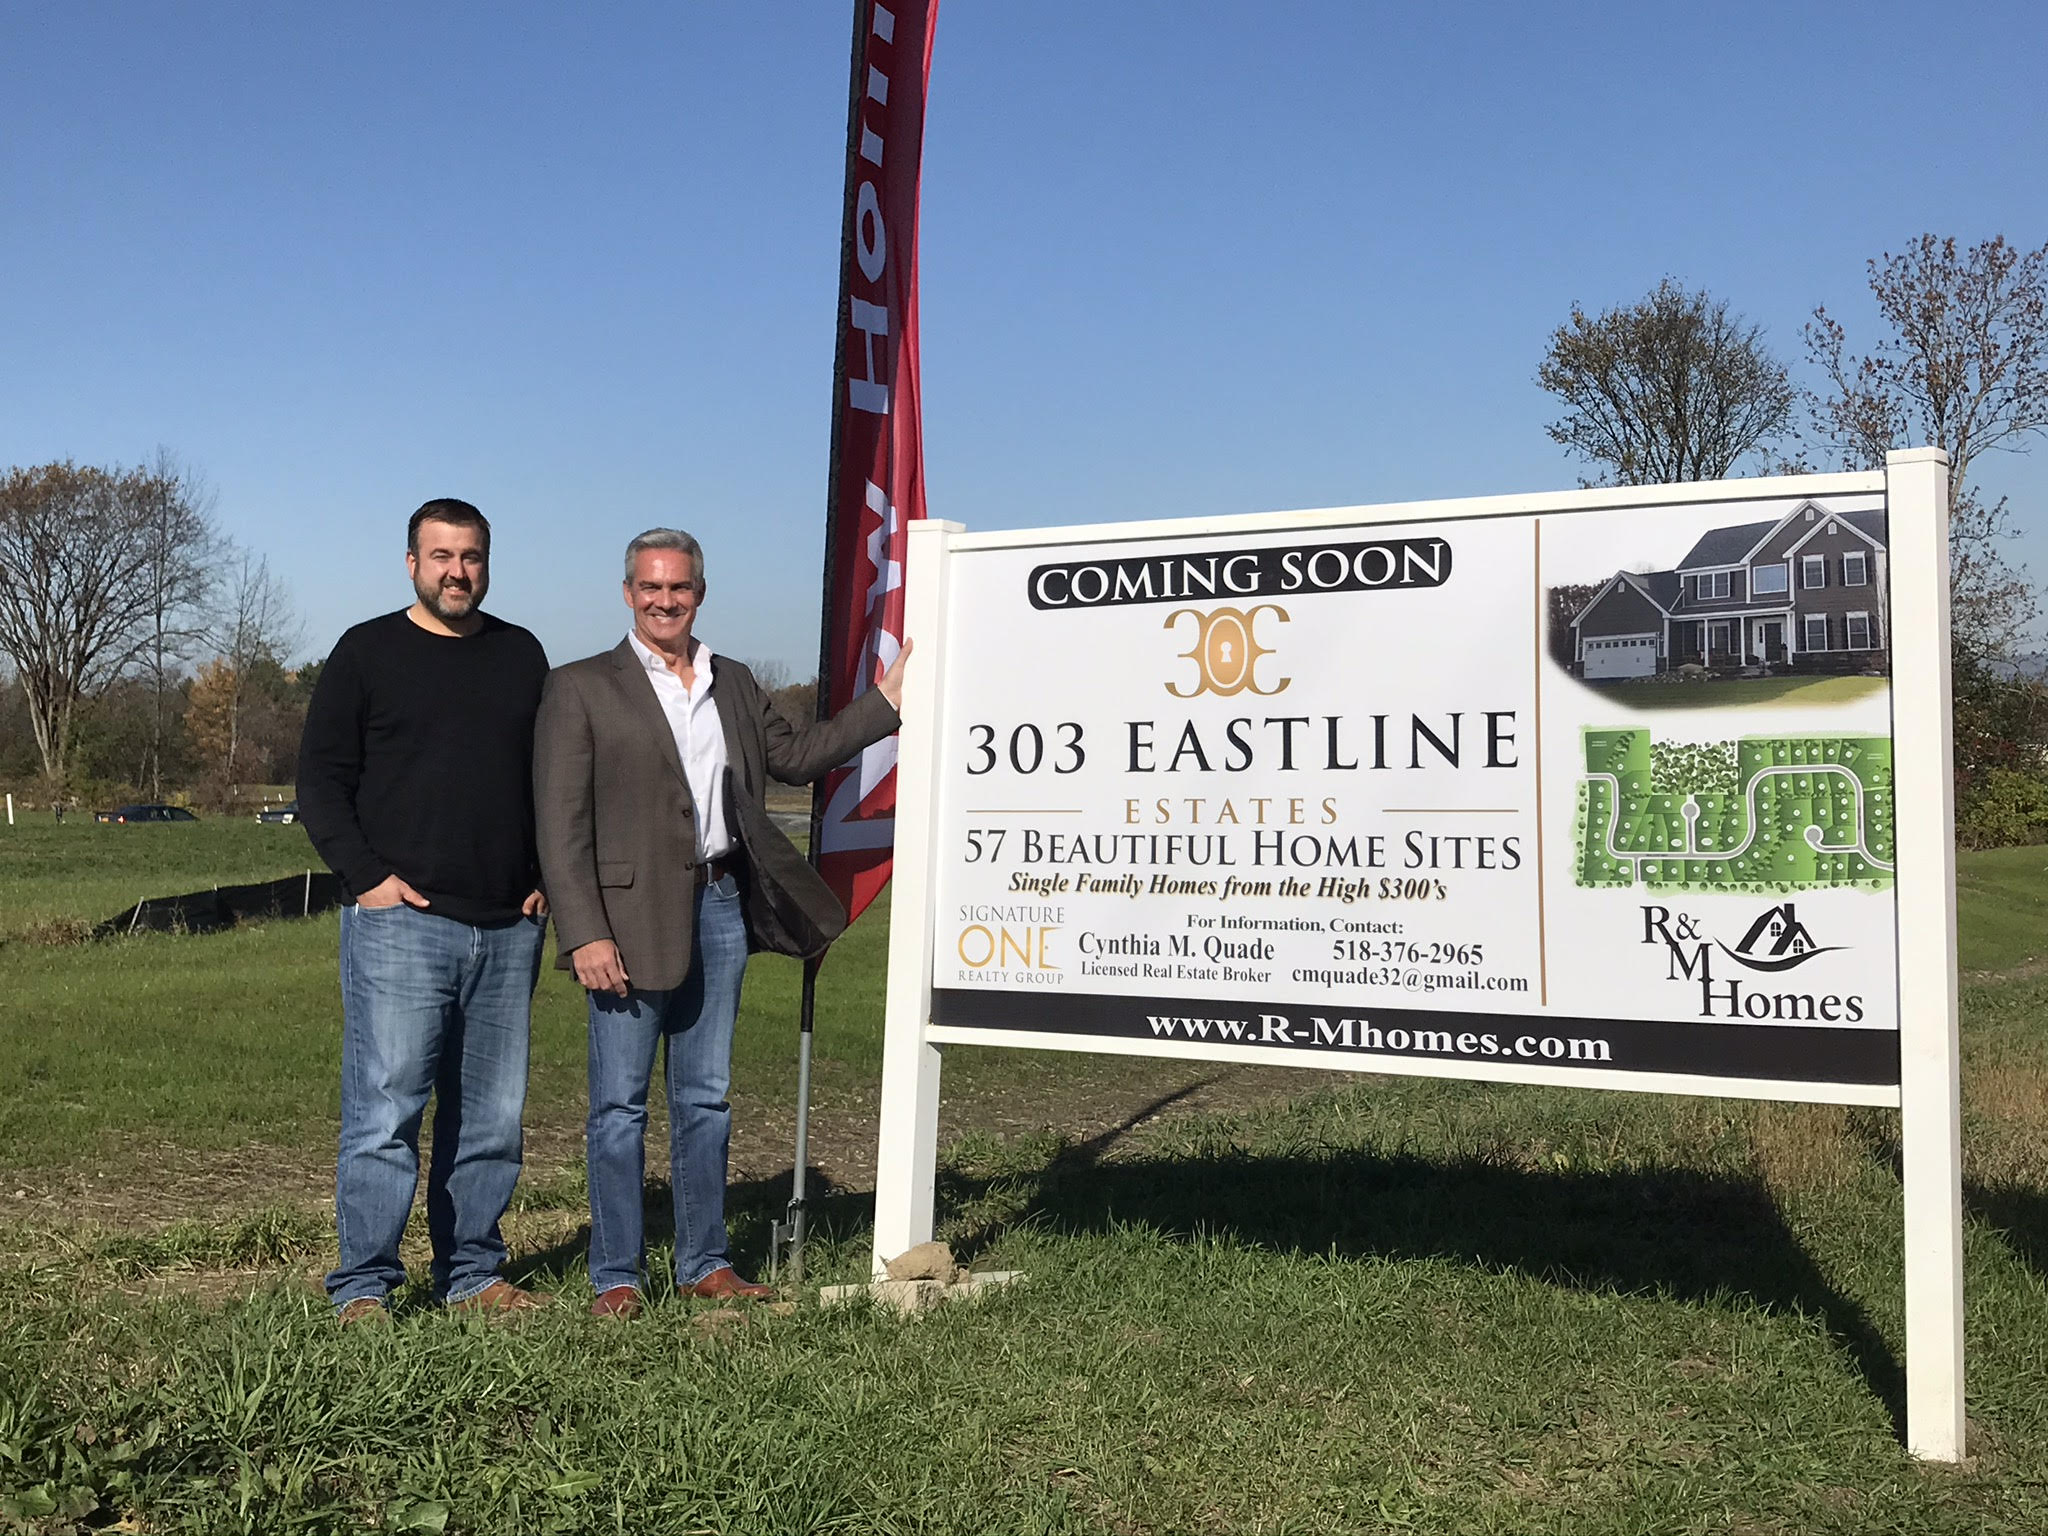 R&M Builders Standing with Sign of 303 Eastline Estates - Ballston Spa Community